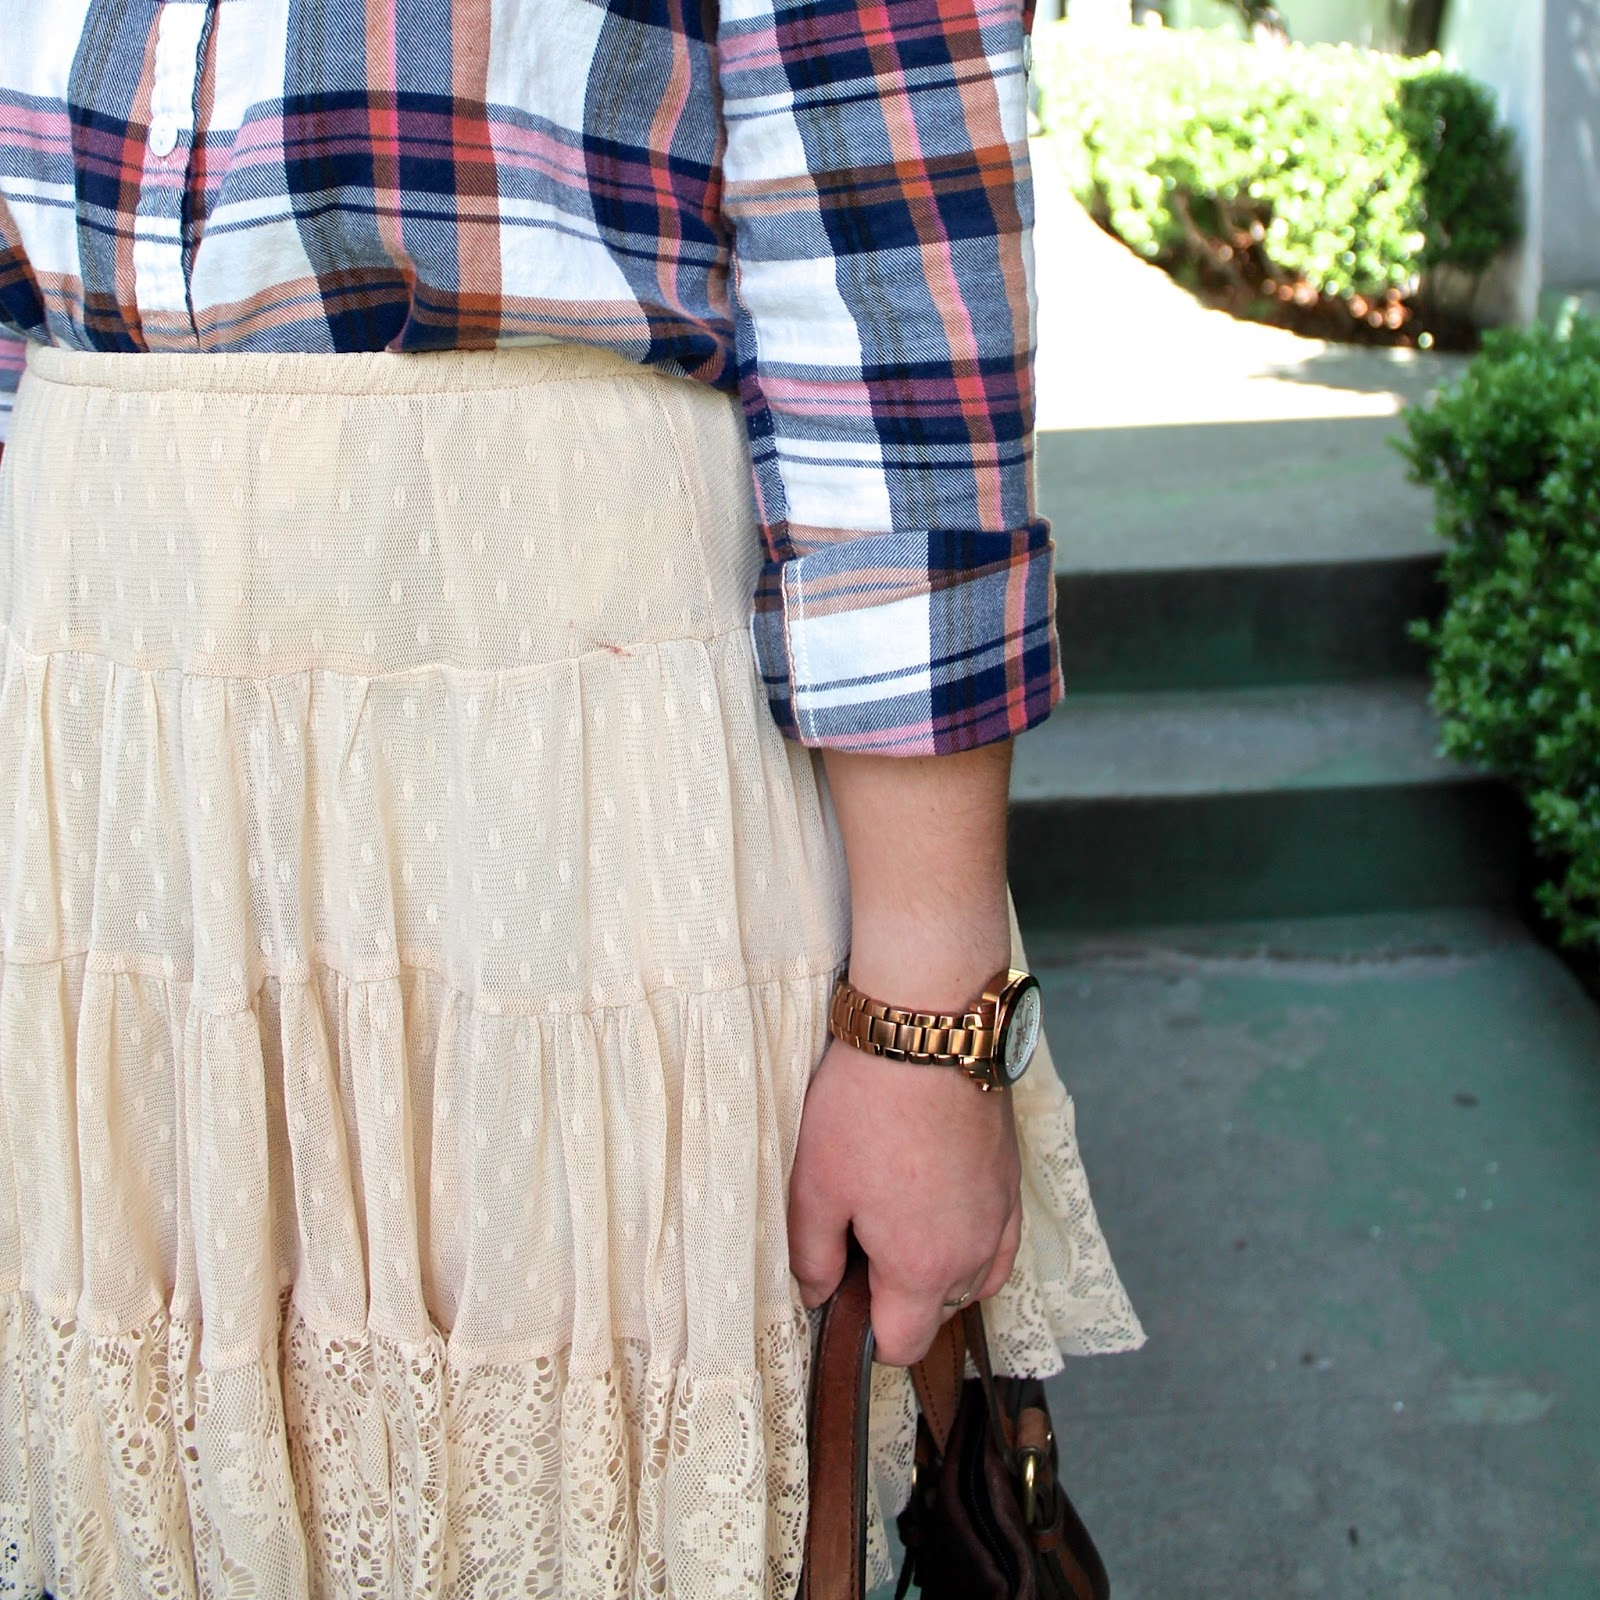 vintage-inspired-lace-skirt-and-plaid-shirt-outfit-ideas